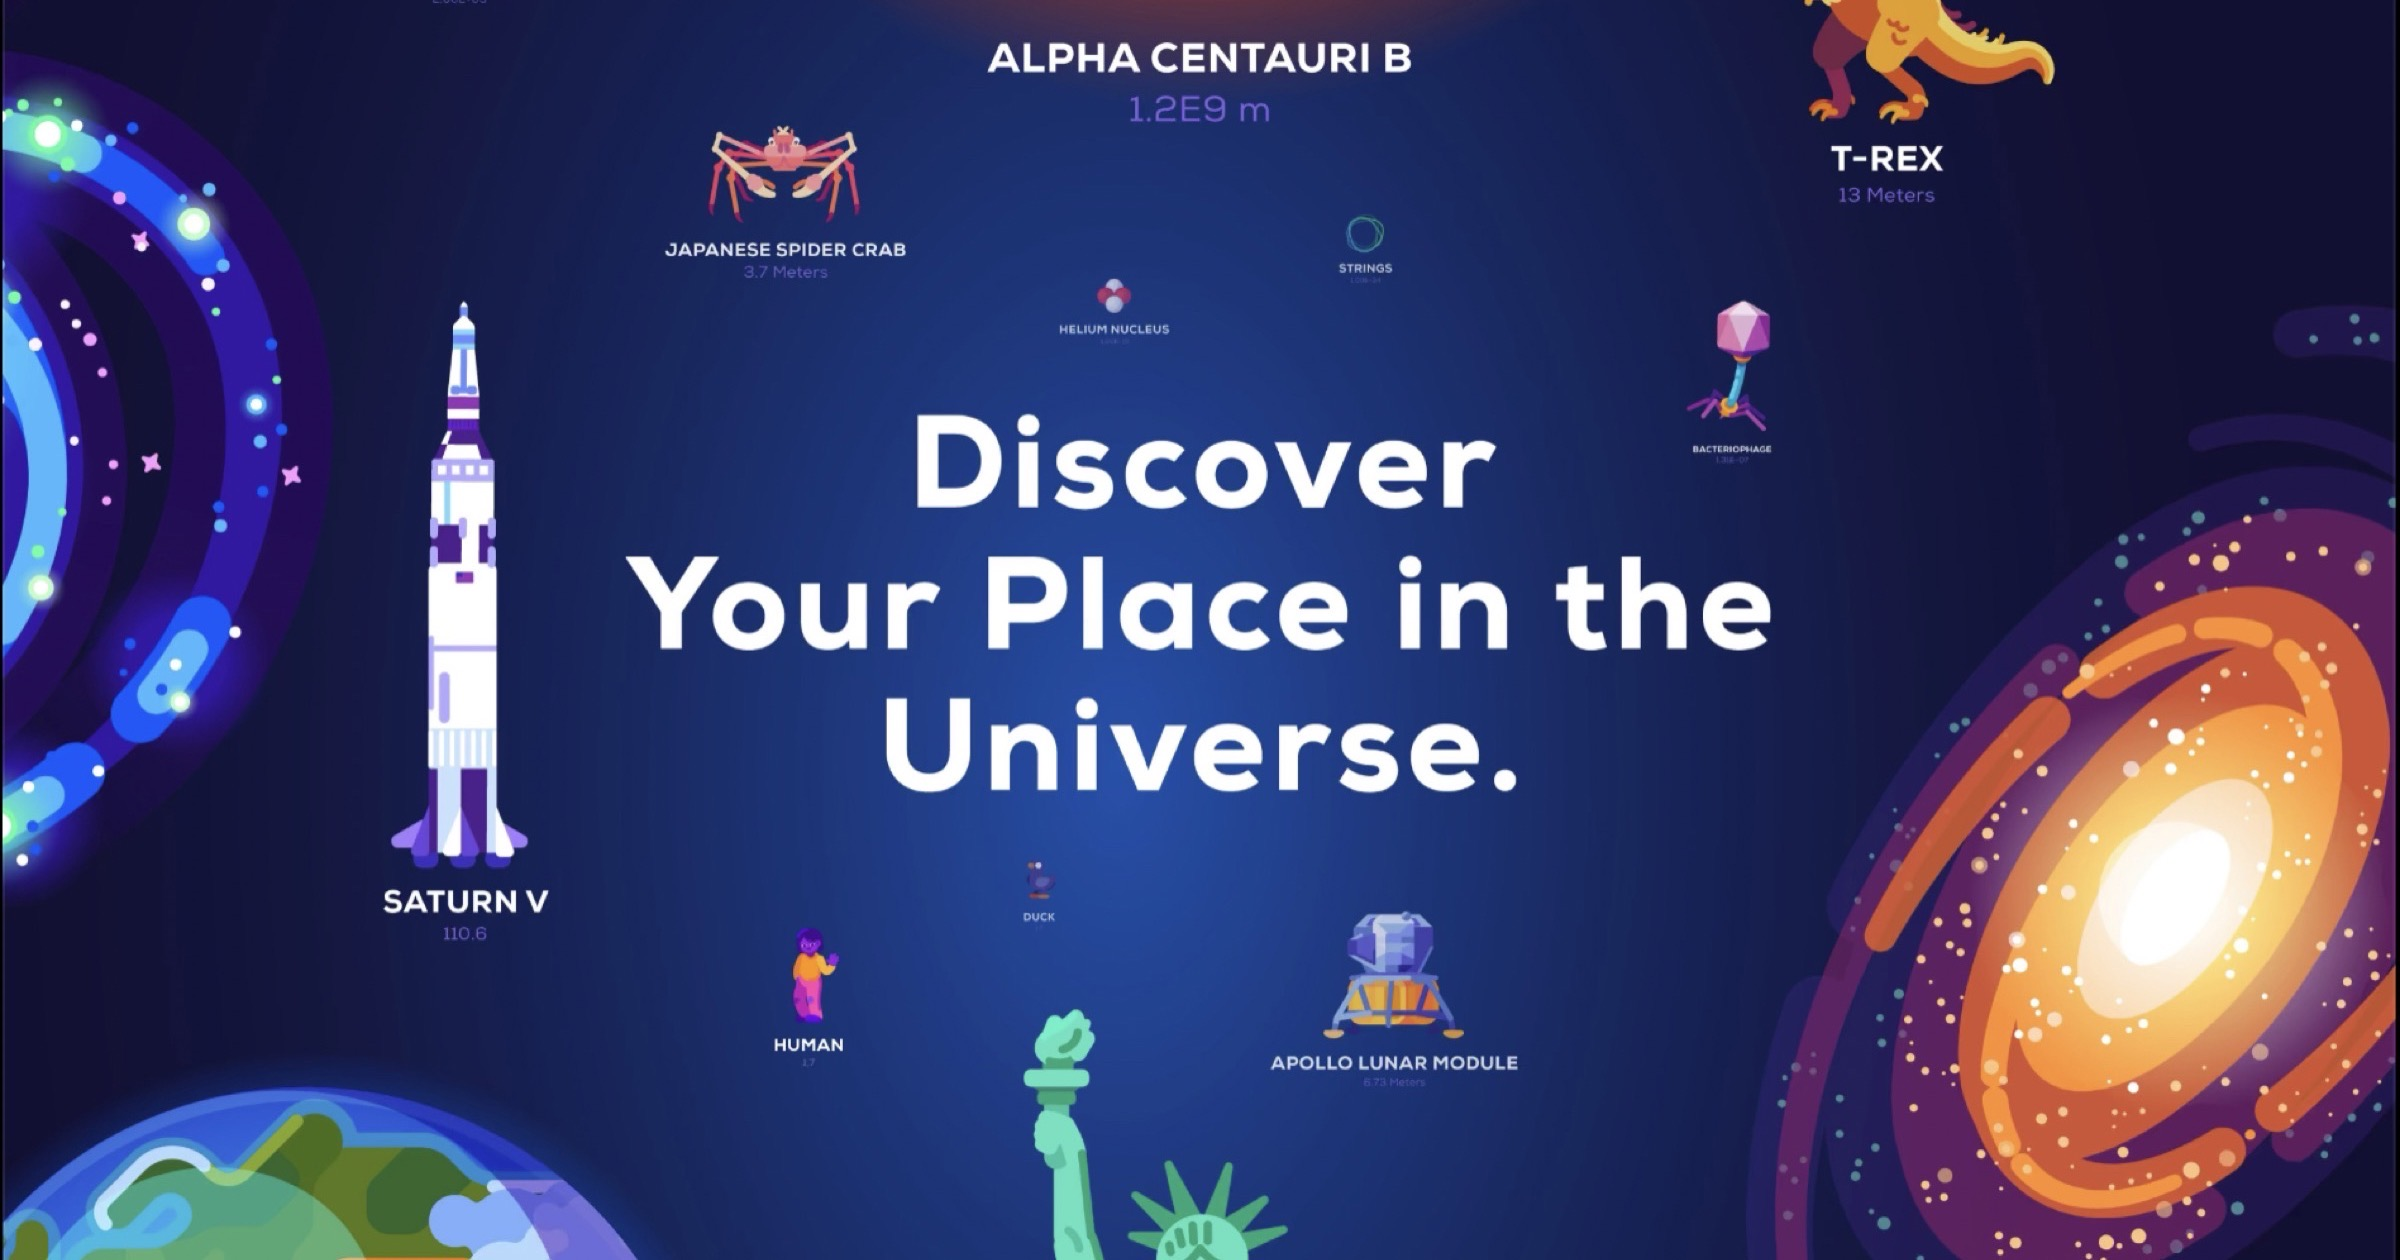 Discover Your Place in the Universe With the Kurzgesagt App